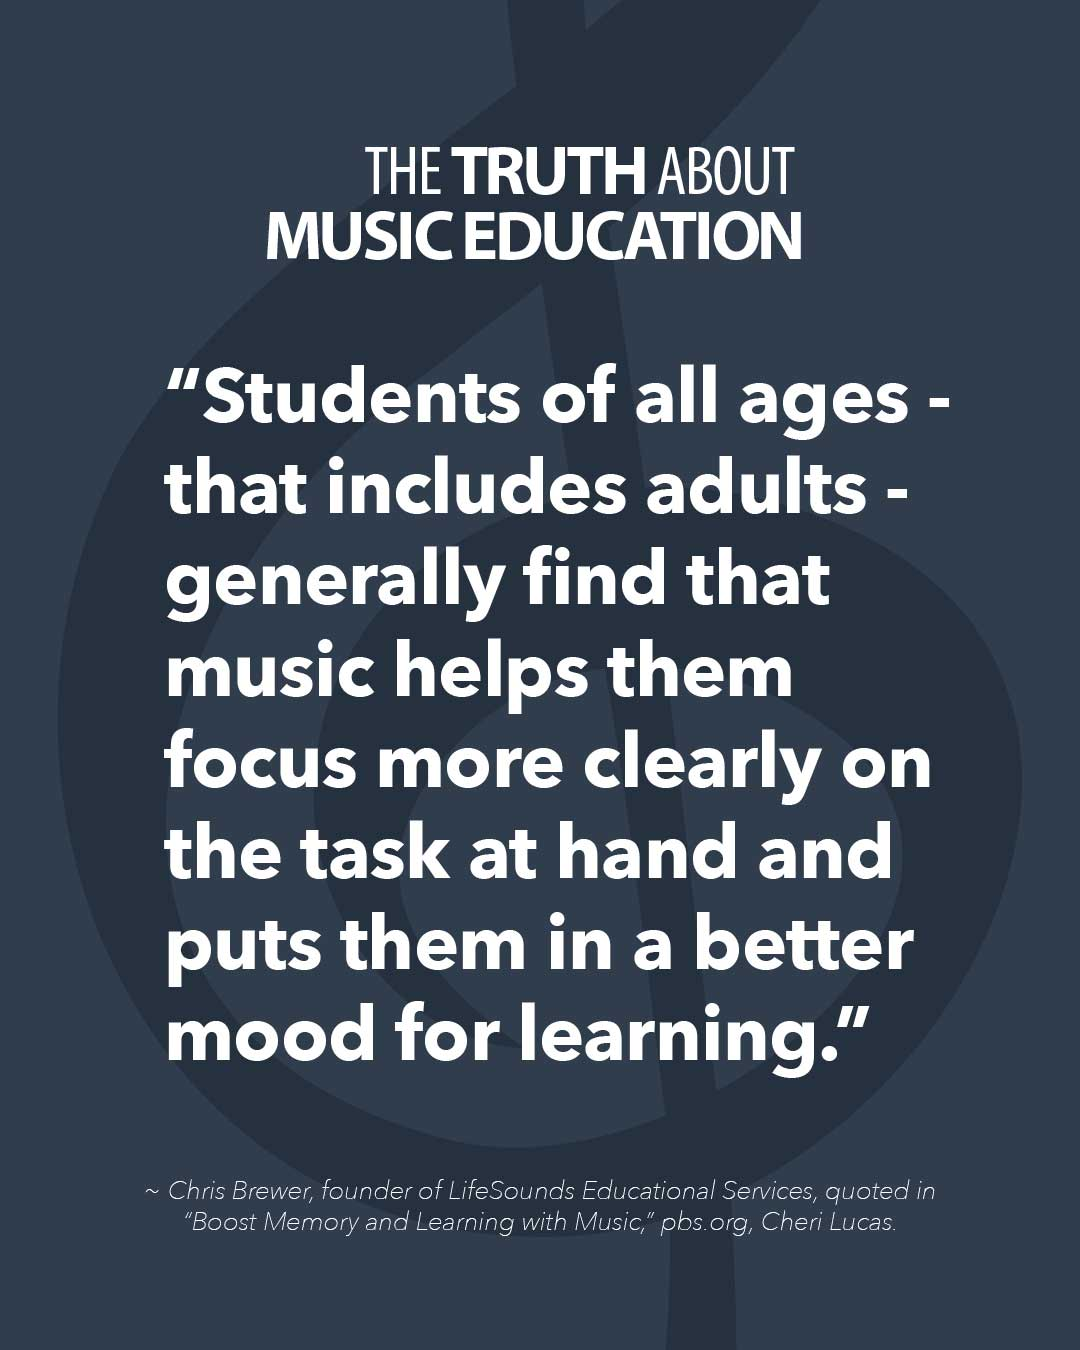 Music Helps Students Focus More Clearly On Tasks | Paige's Music